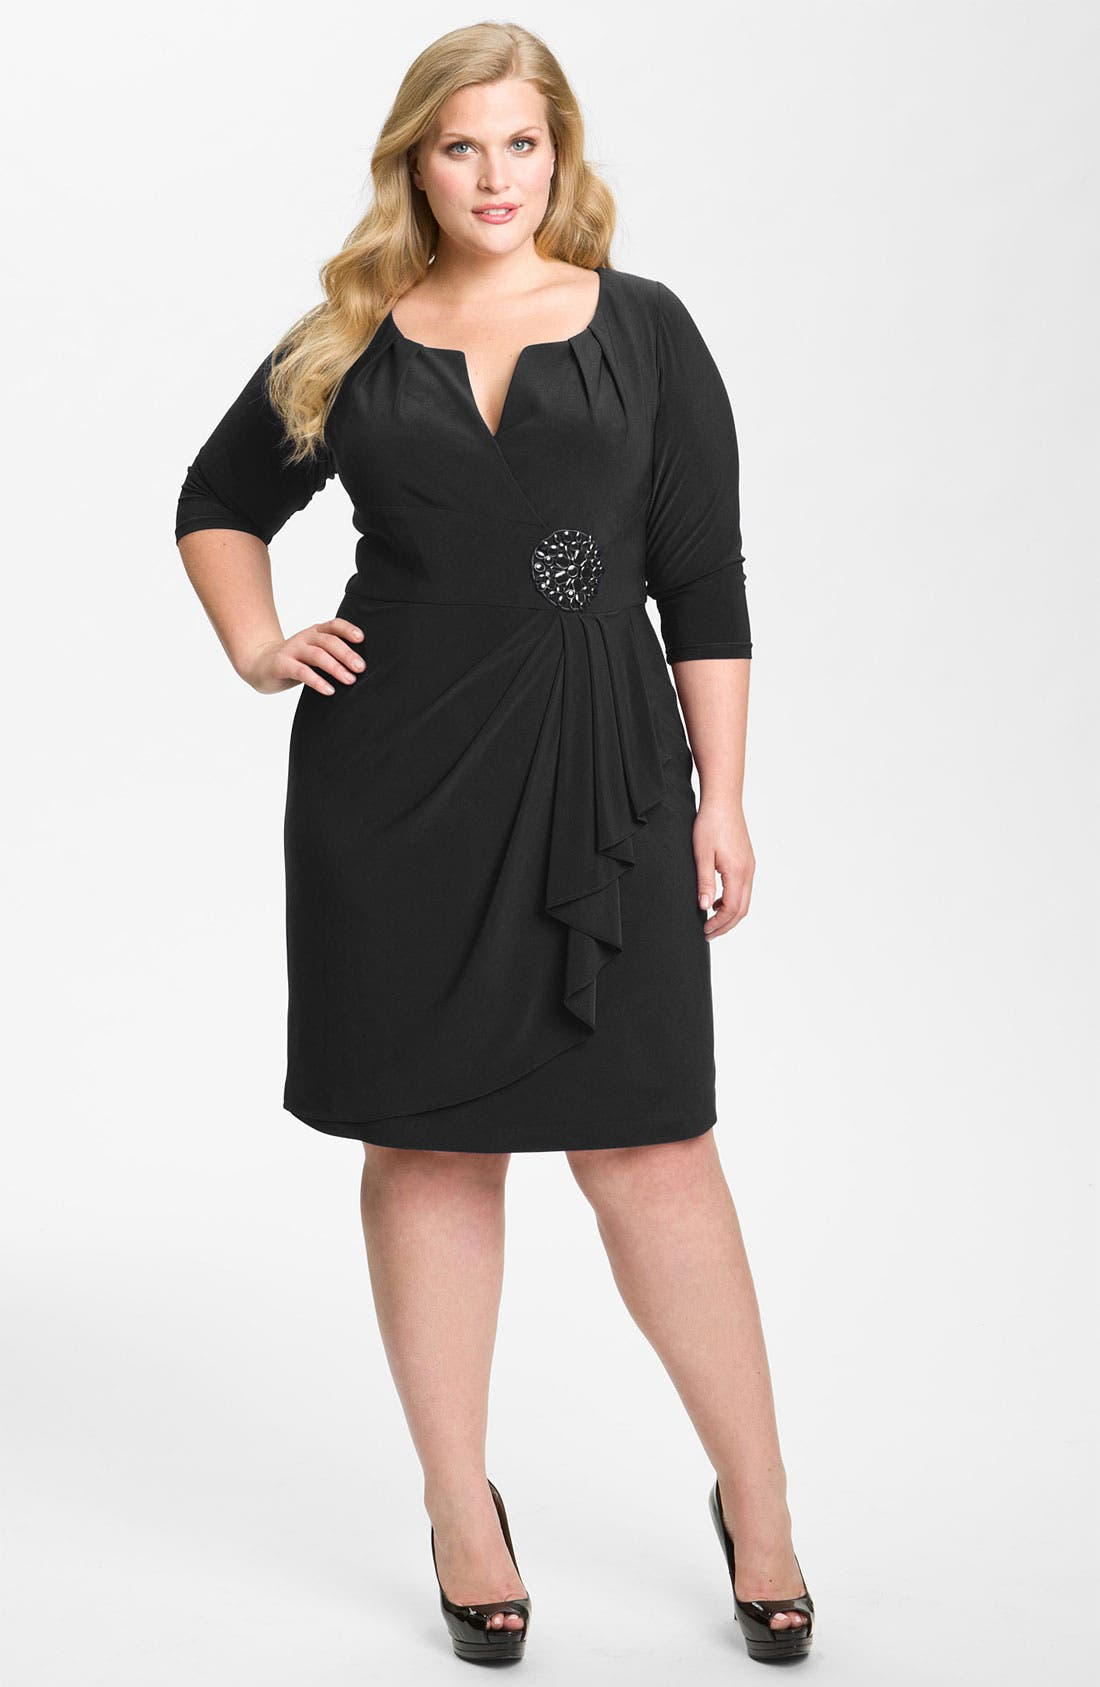 Alternate Image 1 Selected - Adrianna Papell Embellished Matte Jersey Sheath Dress (Plus Size)